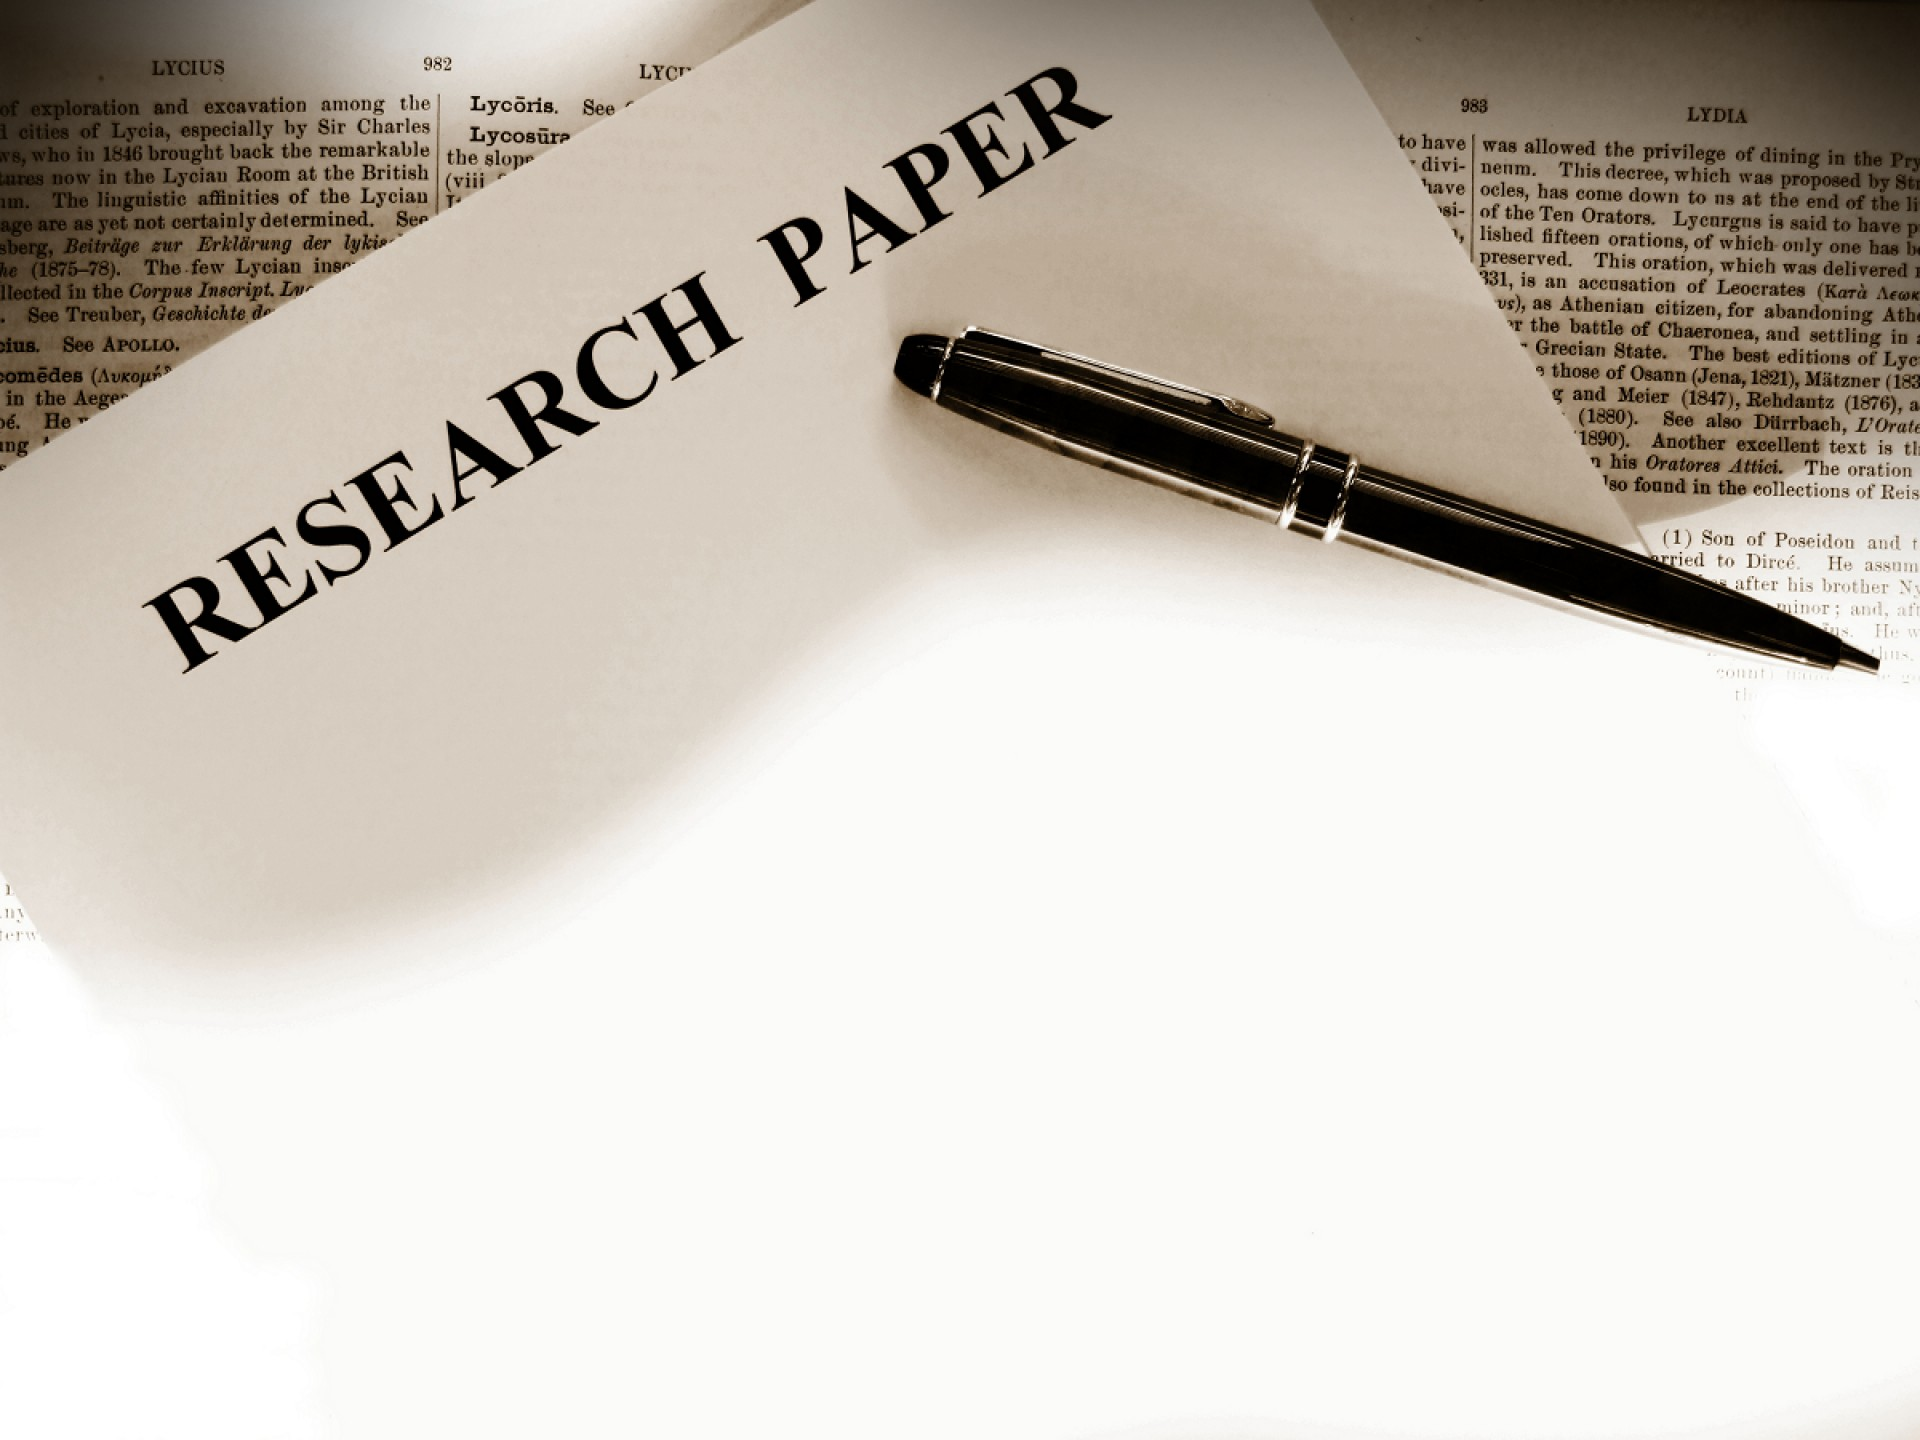 019 Research Papers Writing Paper Help Fascinating Best Services In India Benefits Style 1920